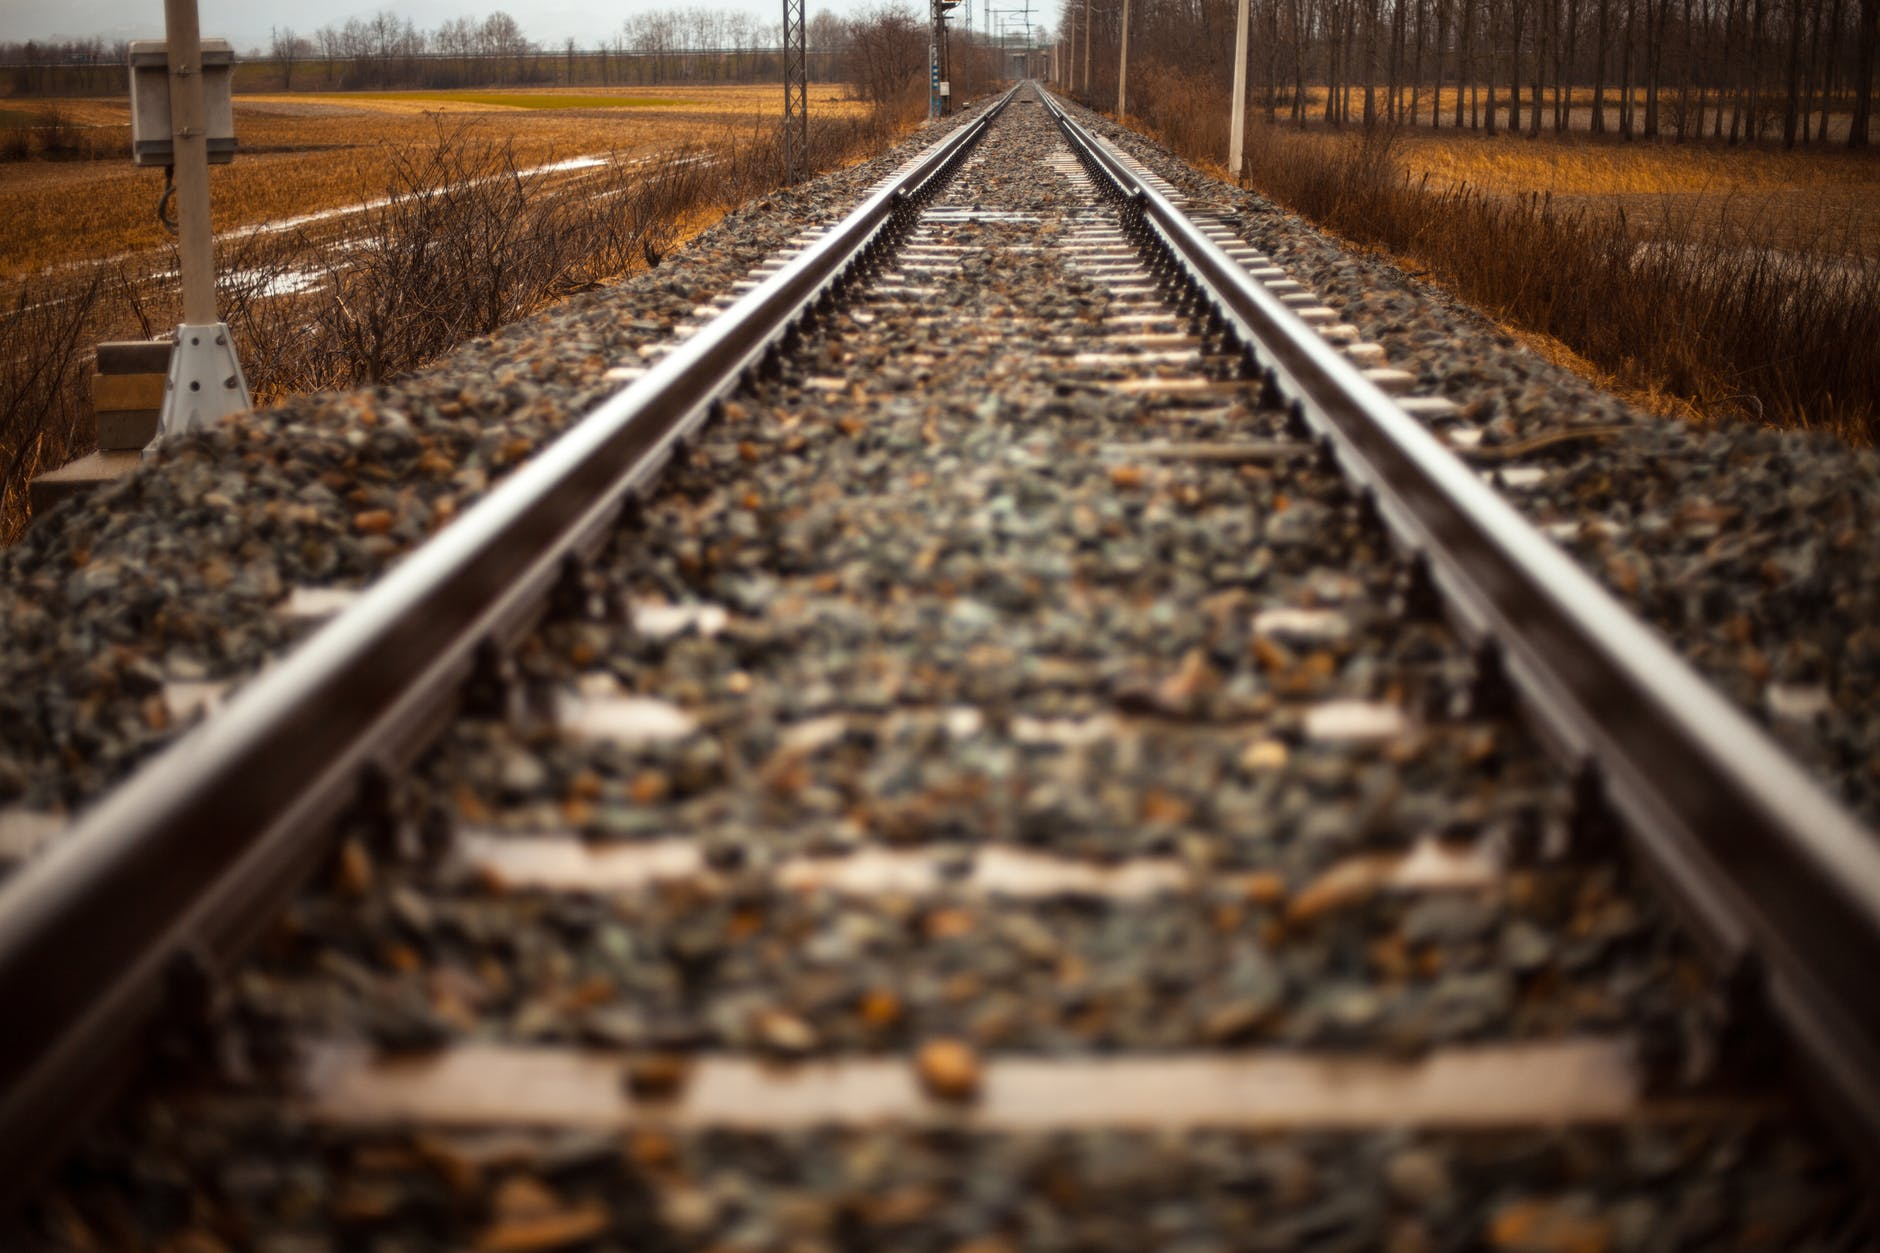 Whiteside County, IL - Robert Merrill Dead In Train Accident At Moline Rd & Smit Rd